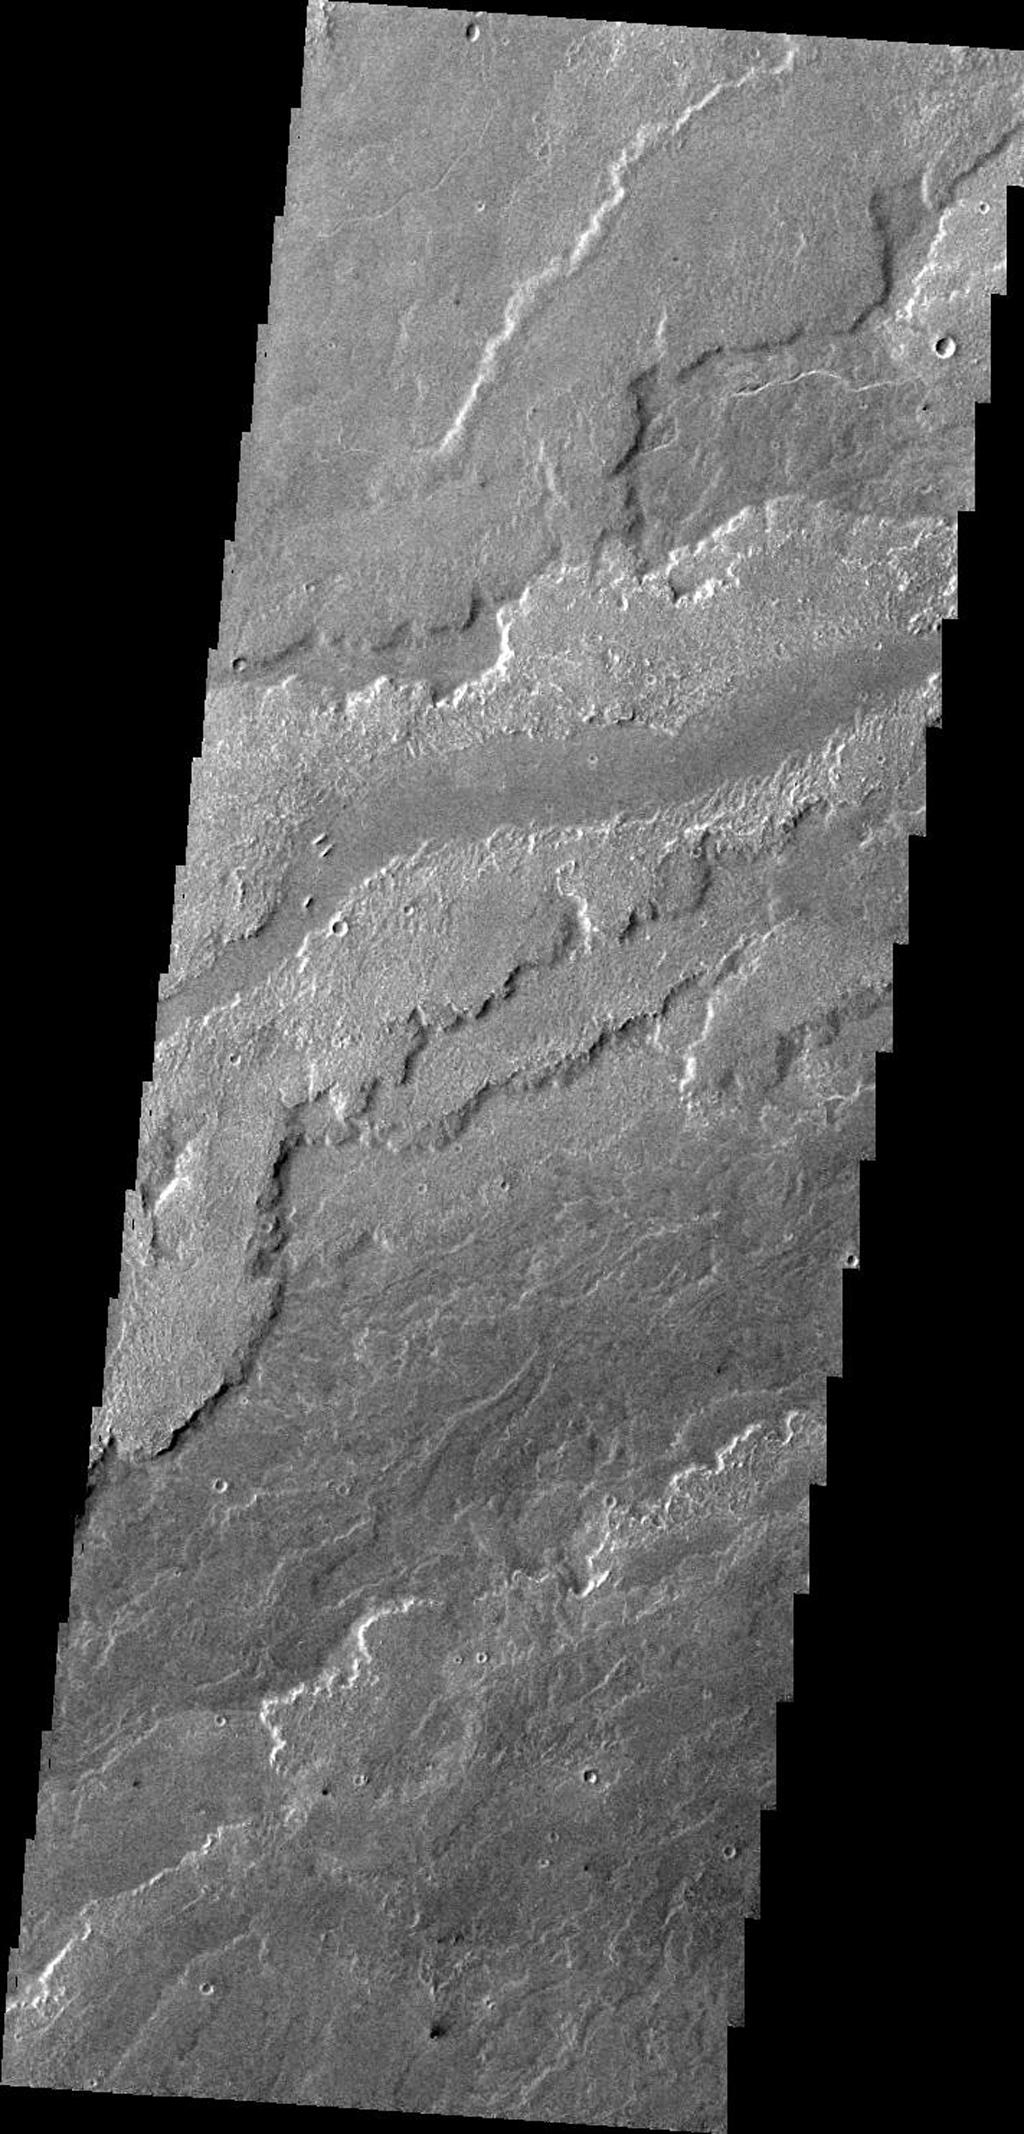 This image, taken by NASA's 2001 Mars Odyssey spacecraft, shows a small portion of the lava flows associated with Arsia Mons.